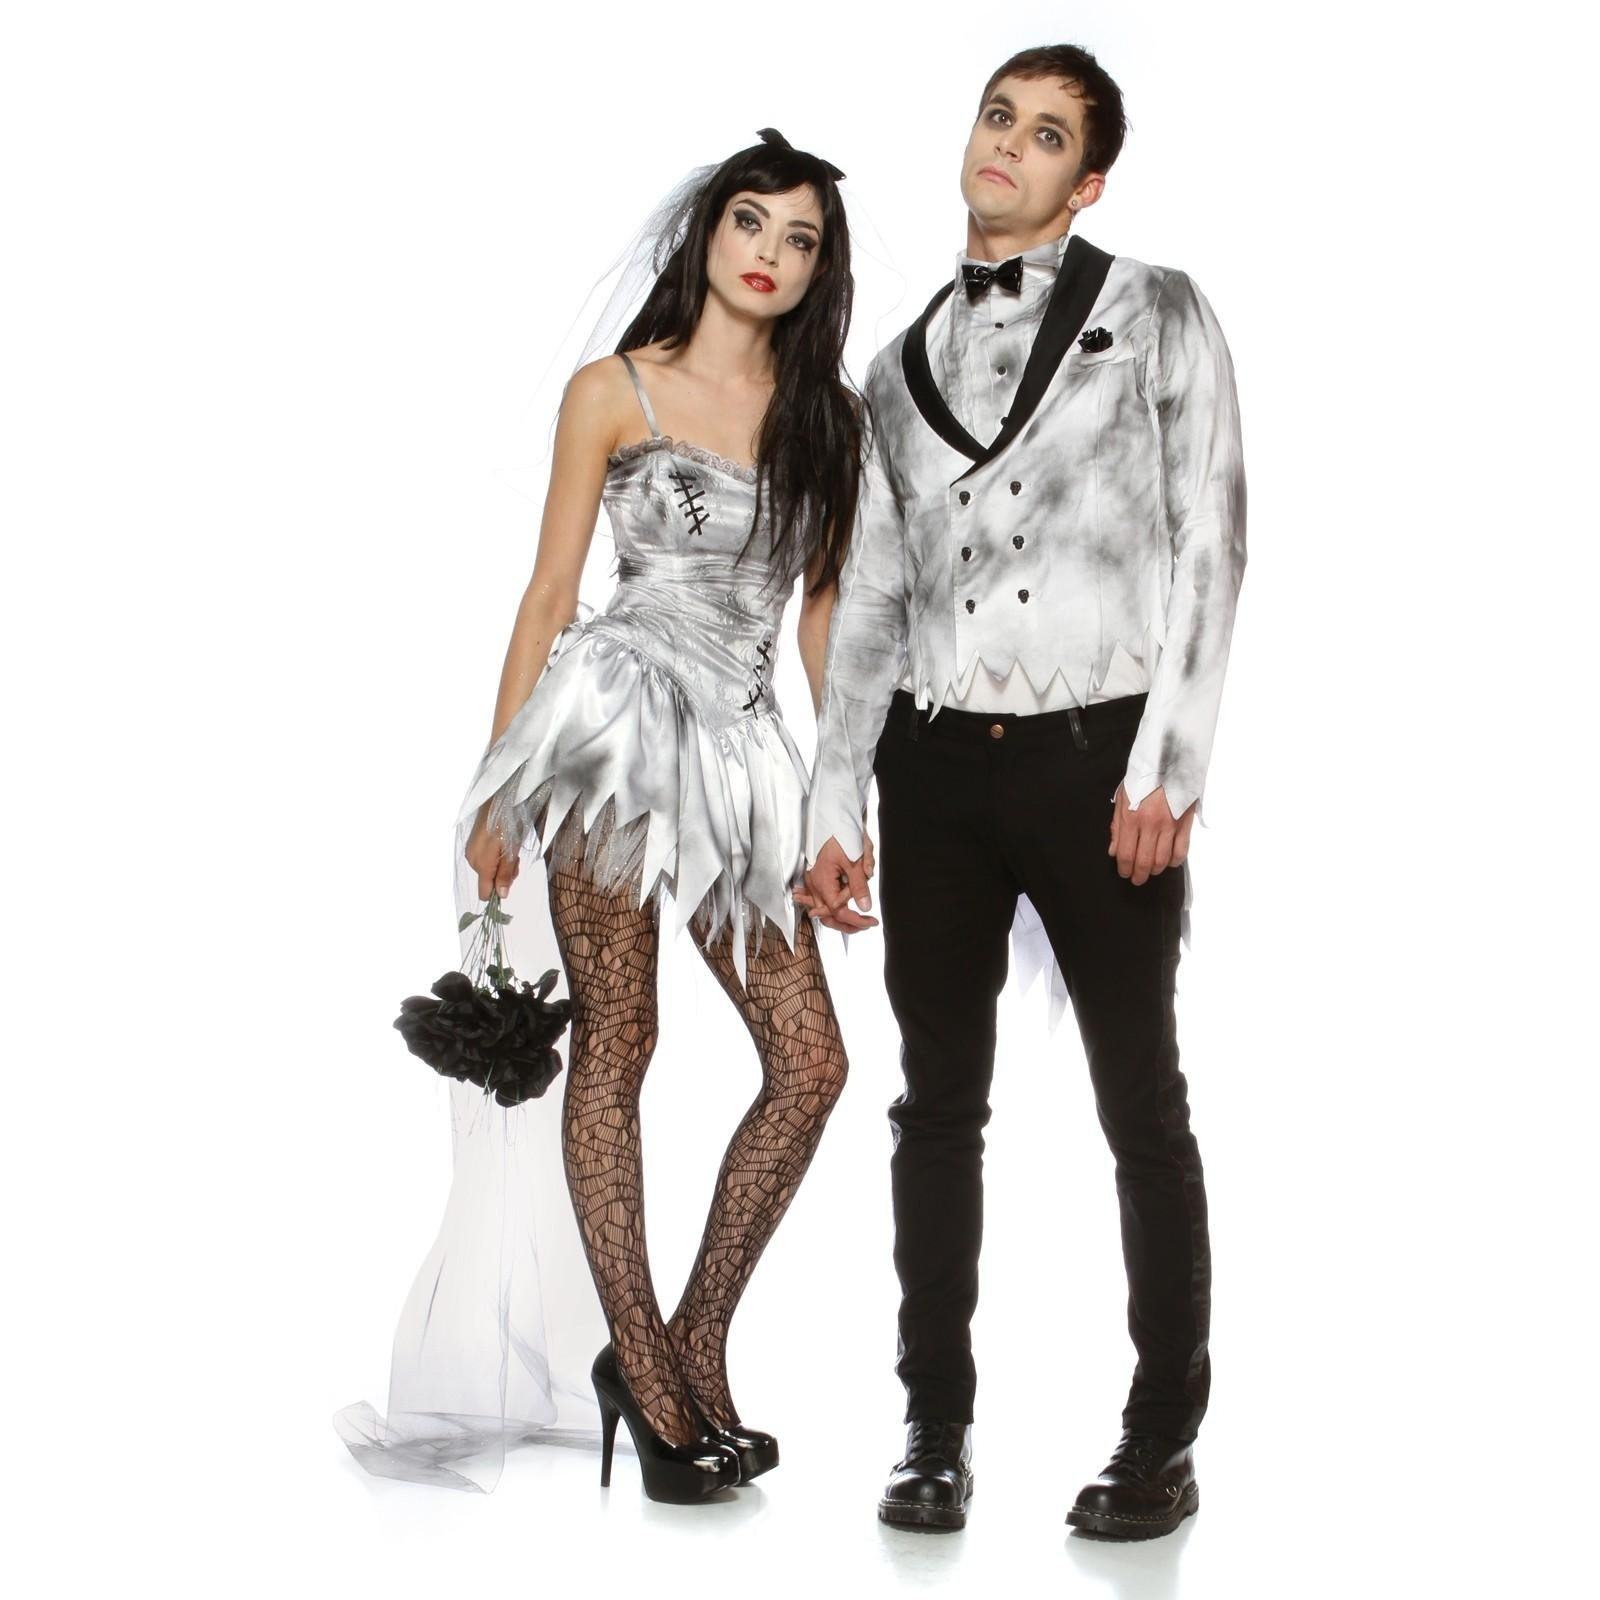 10 Fashionable Zombie Costume Ideas For Men mens zombie groom costume costumes and halloween costumes 2 2020